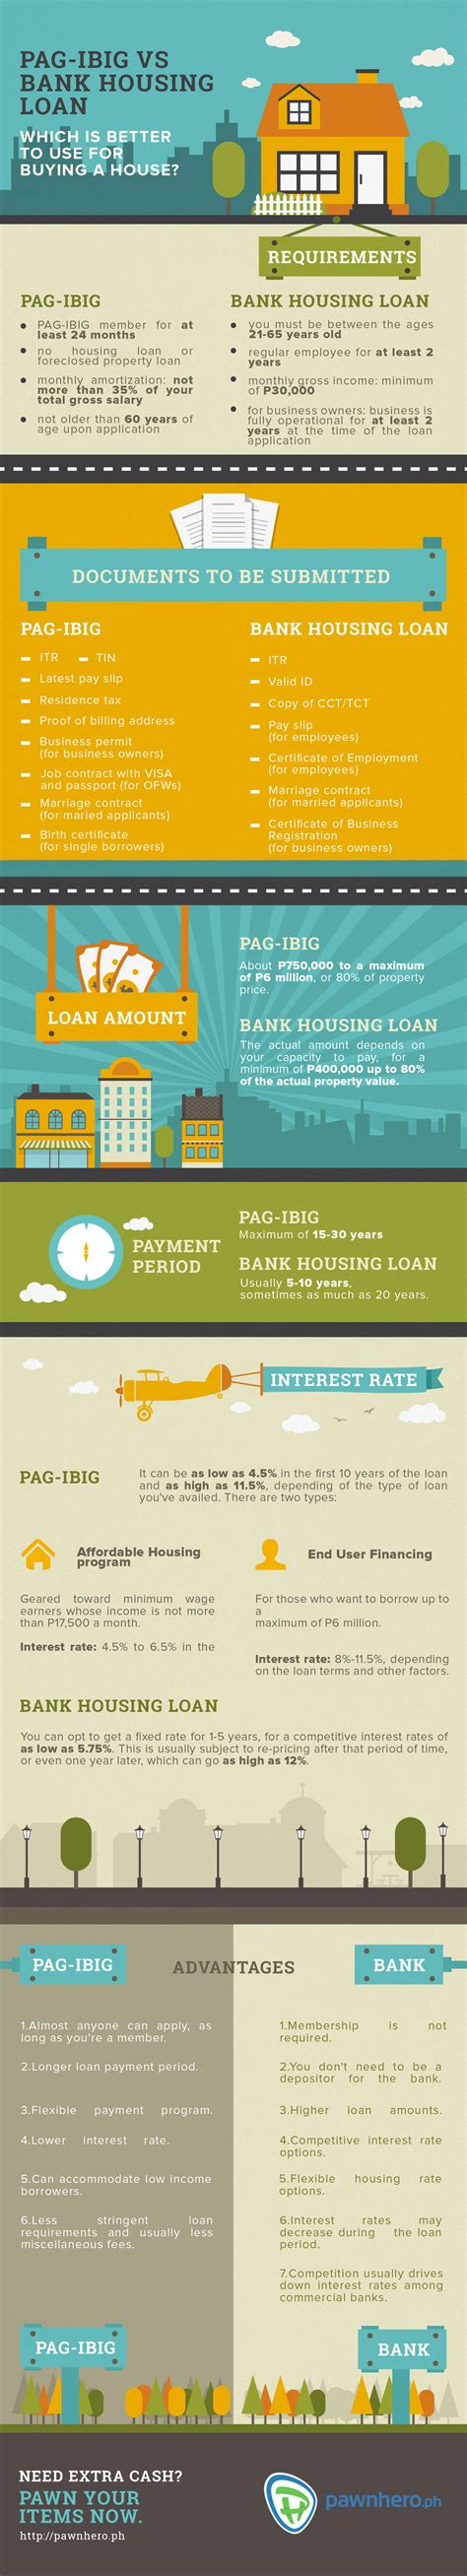 pag ibig housing loan application pag ibig vs bank housing loan which is better to use for